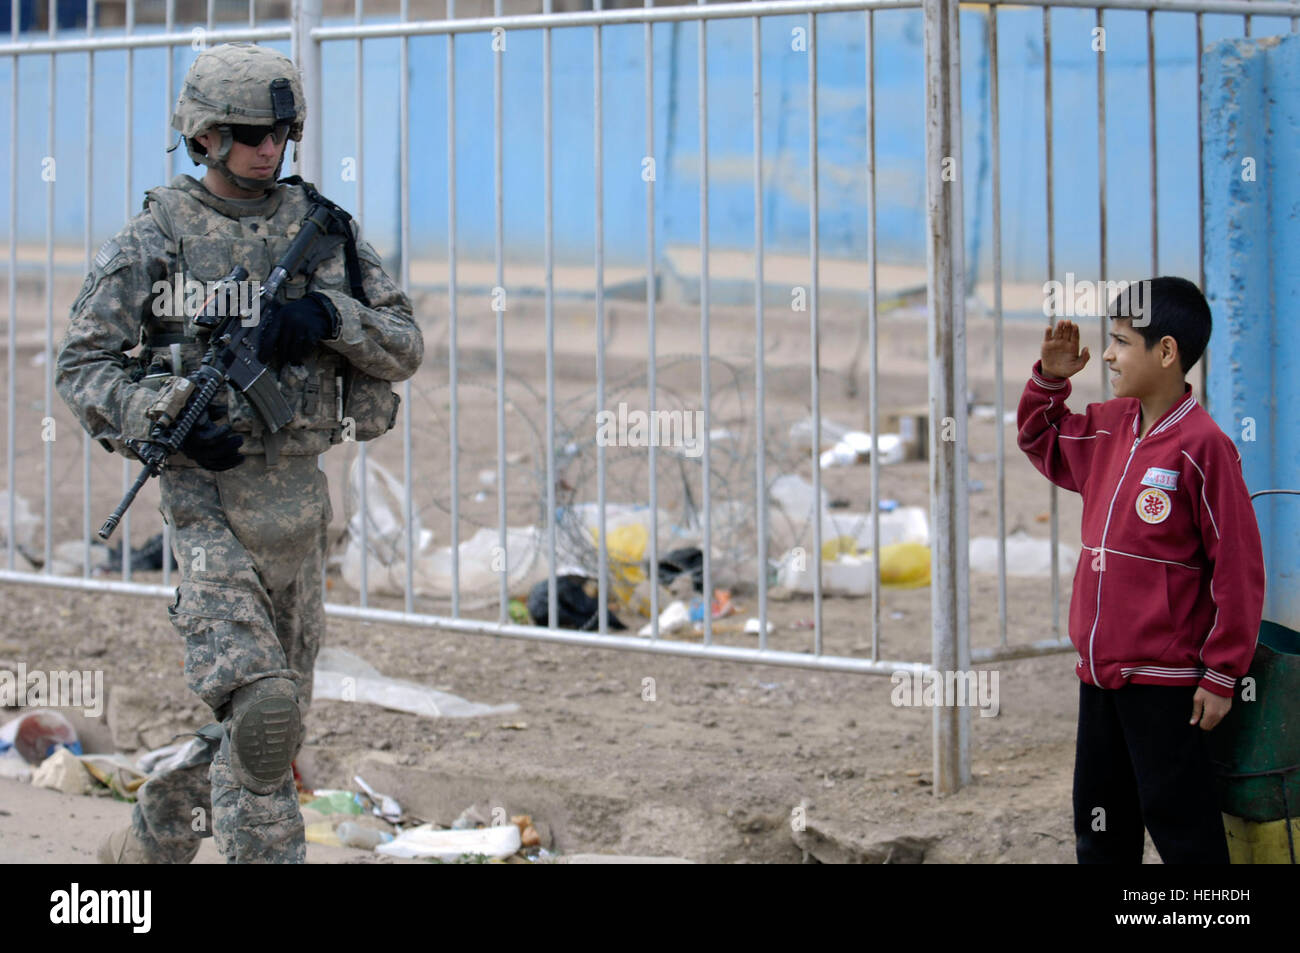 A young Iraqi boy stands and salutes Spc. Todd Bair of the1st Battalion, 505th Parachute Infantry Regiment, 3rd - Stock Image